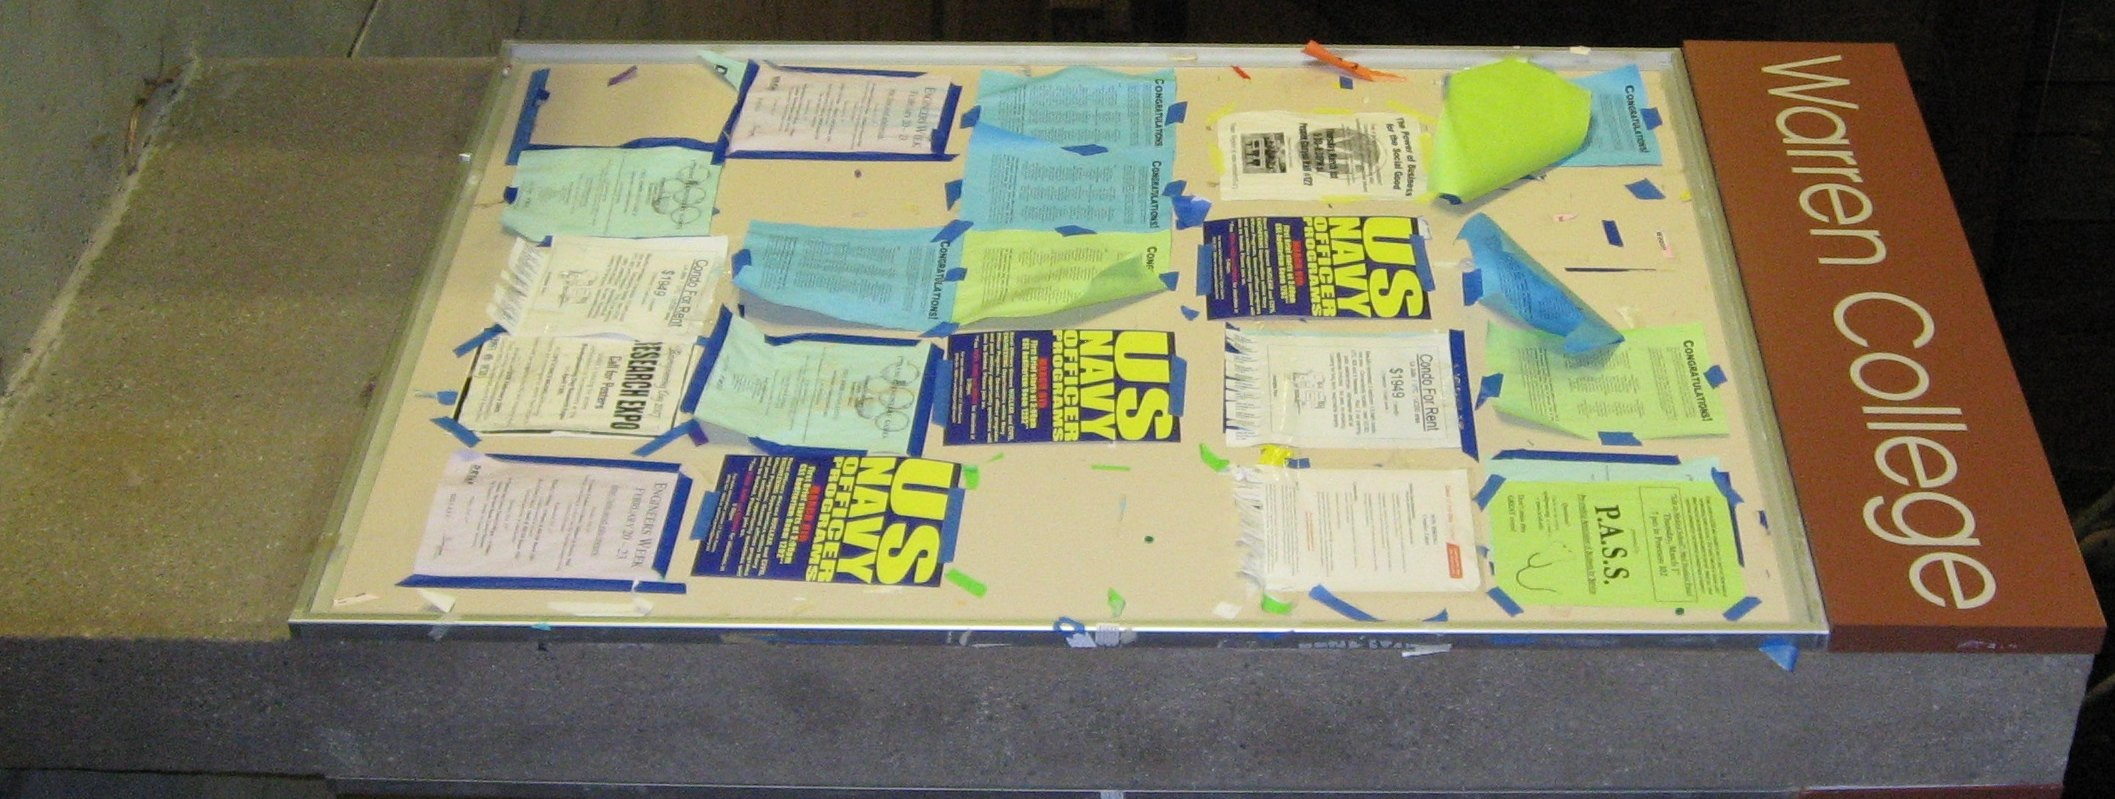 Warren Walk Boards : Social architectures suggested projects